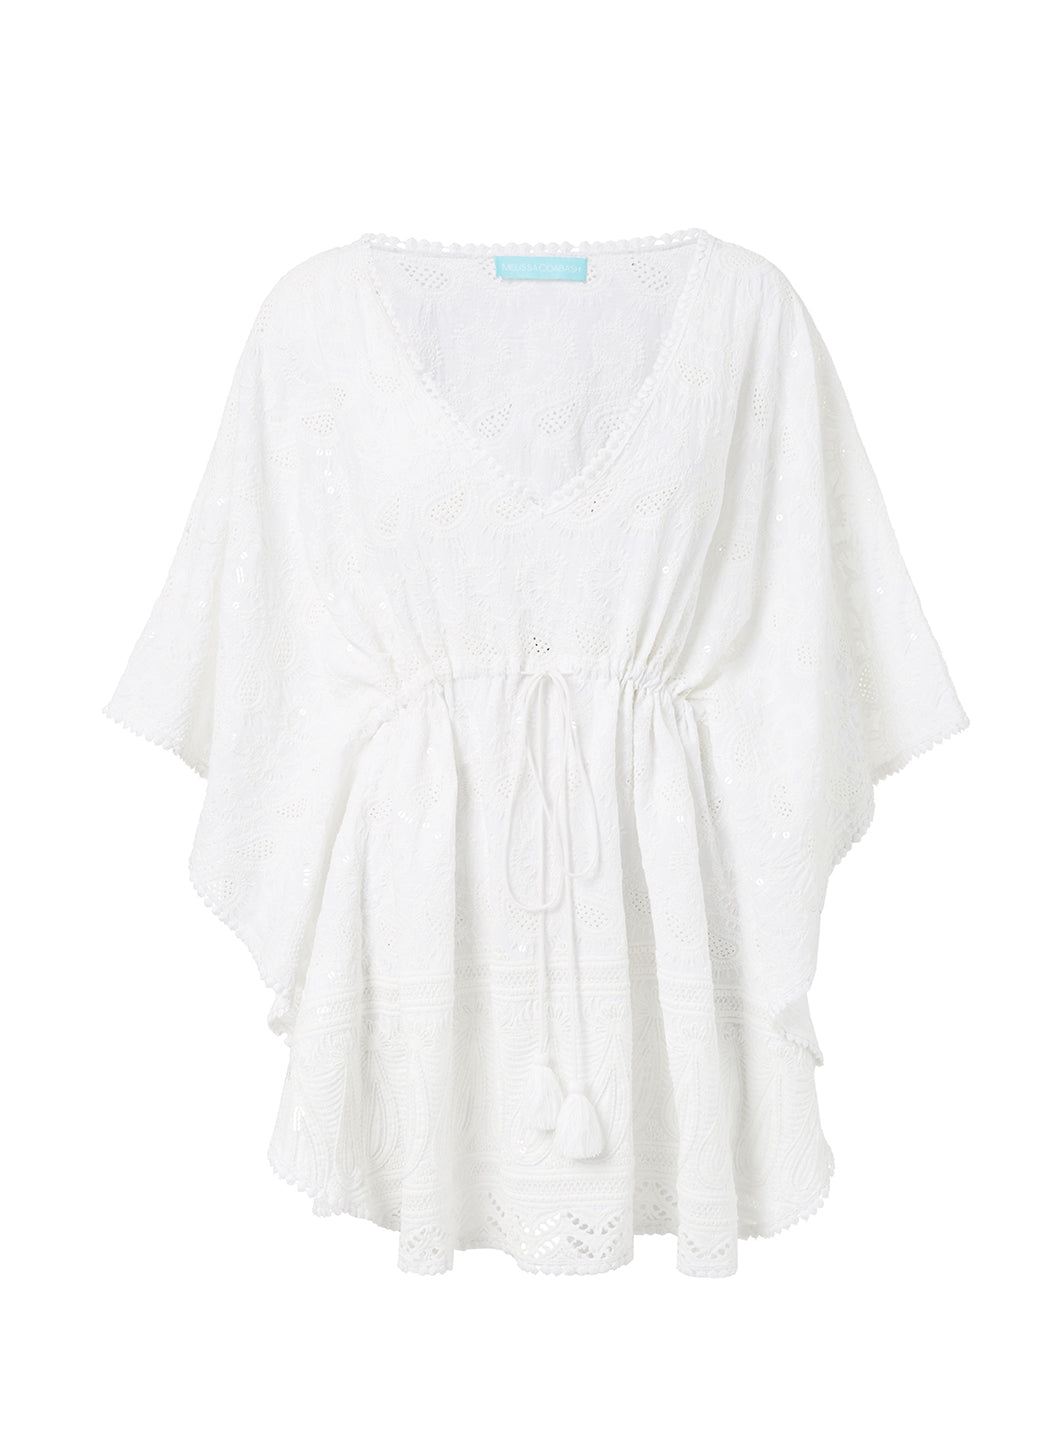 Trixie White Textured V-Neck Short Kaftan - Melissa Odabash Beachwear